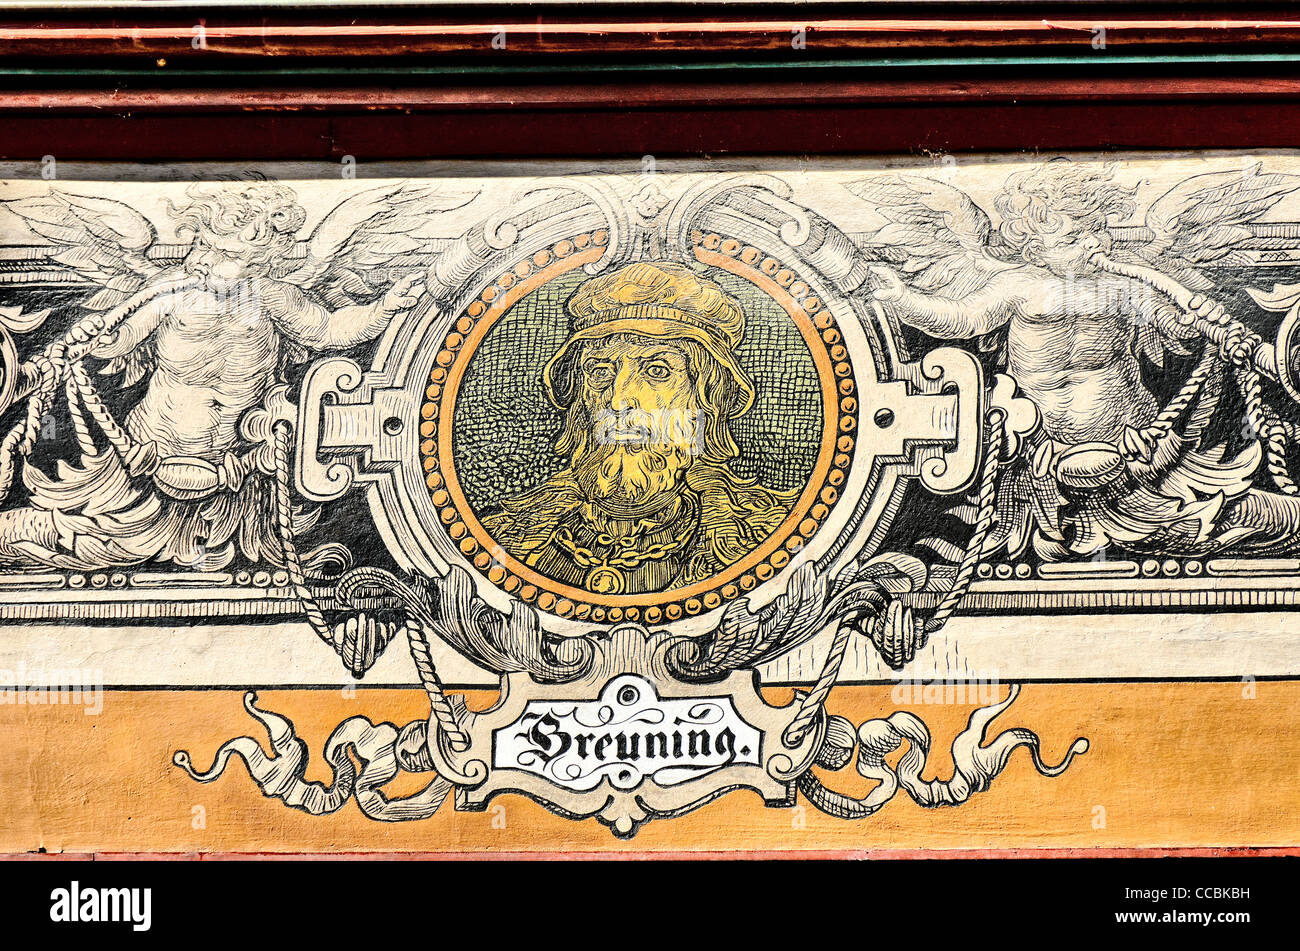 Painted portrait of Konrad Breuning on facade of the town hall of Tuebingen, 'Portraet Fassade Tuebinger Rathaus' - Stock Image